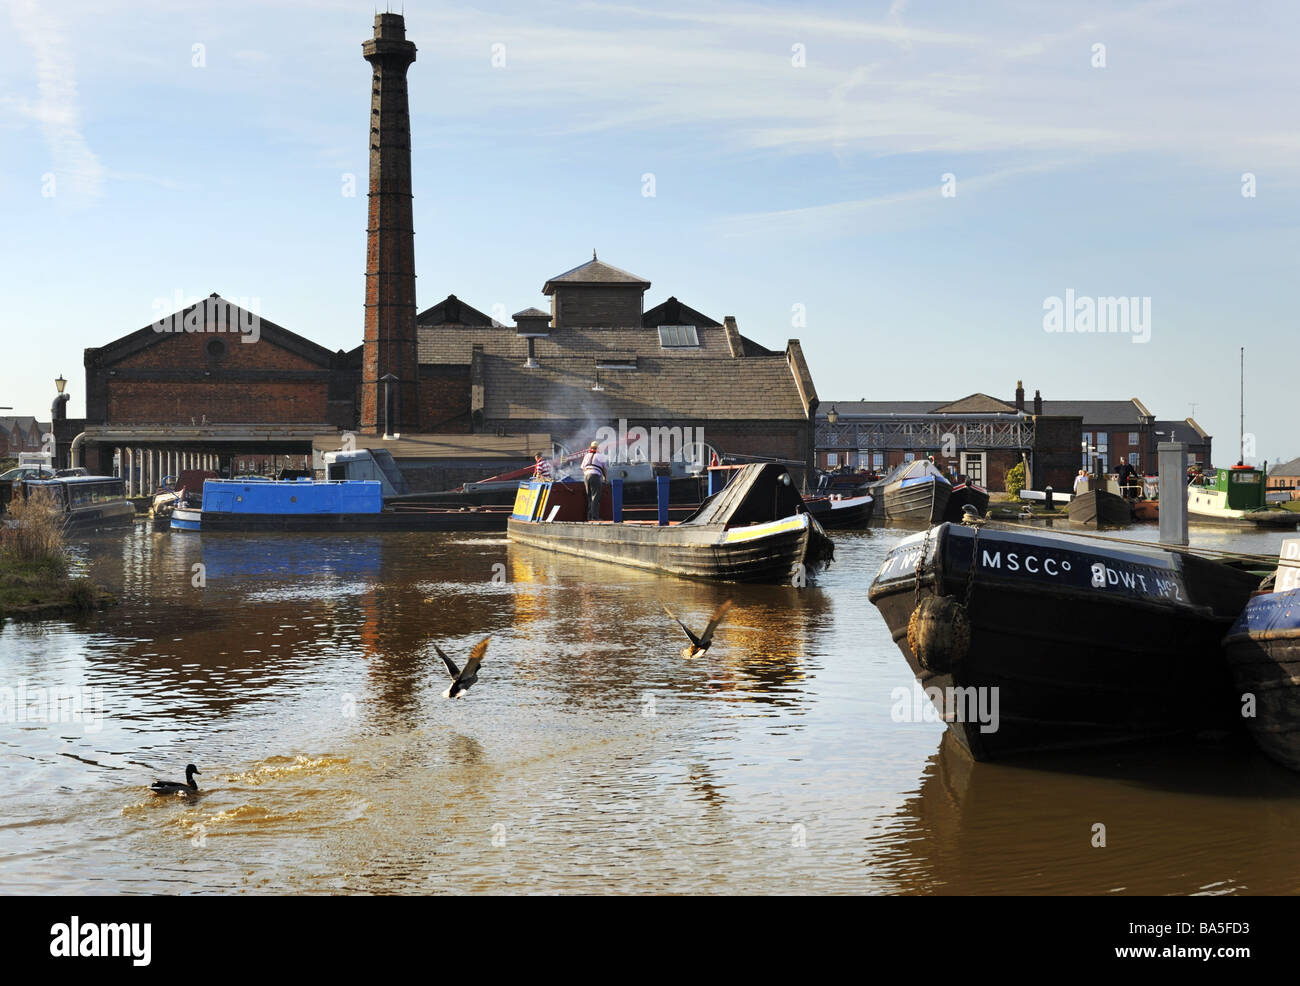 A traditional narrowboat docking at The Boat Museum, Ellesmere Port, Cheshire. - Stock Image